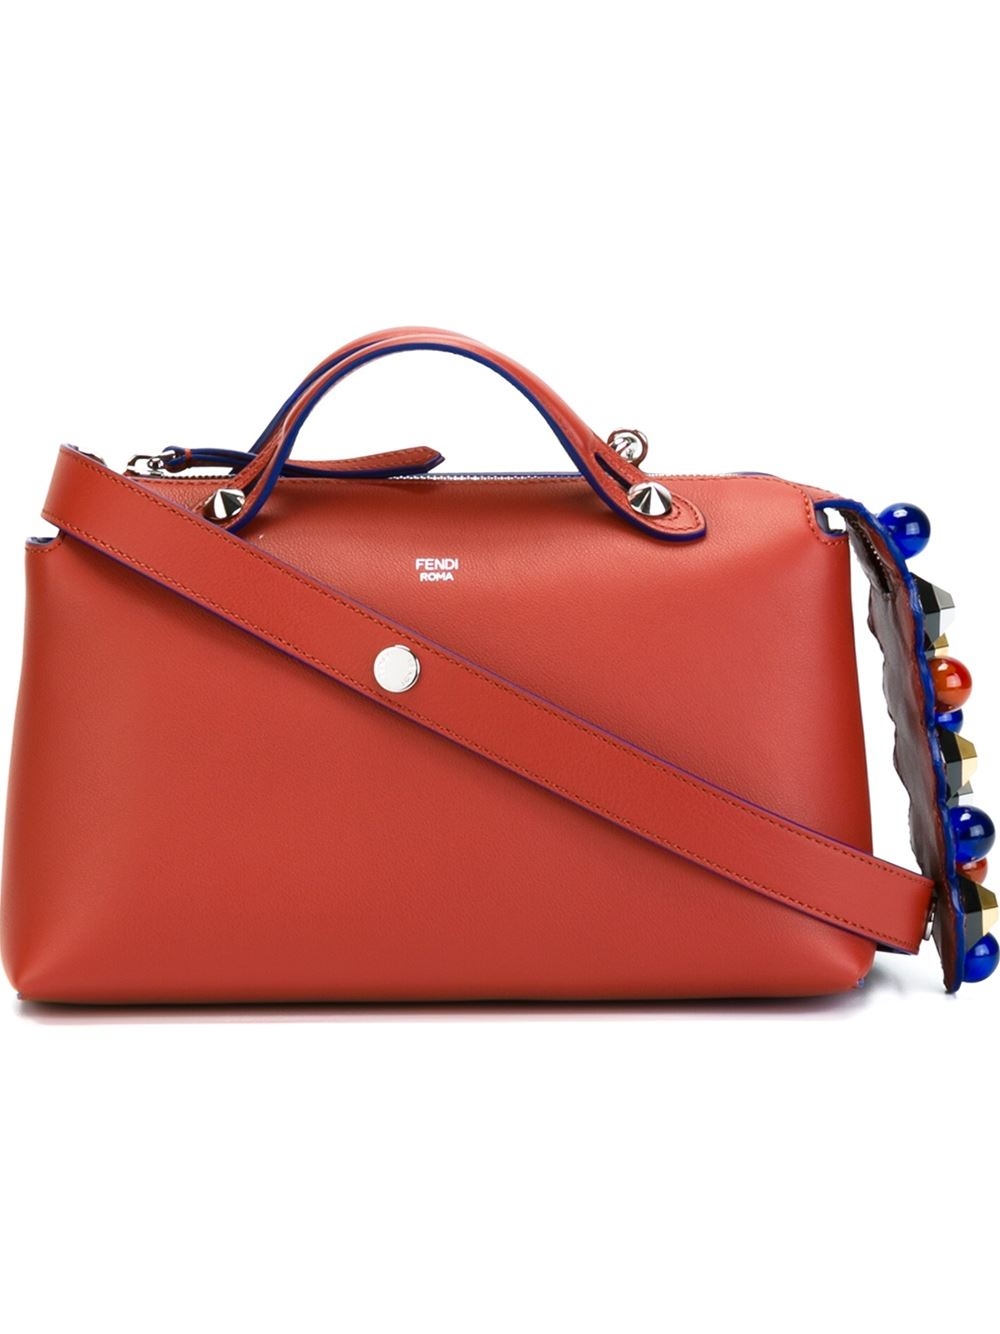 ac9fc1f8dee Fendi By The Way Medium Leather Tote in Red - Lyst